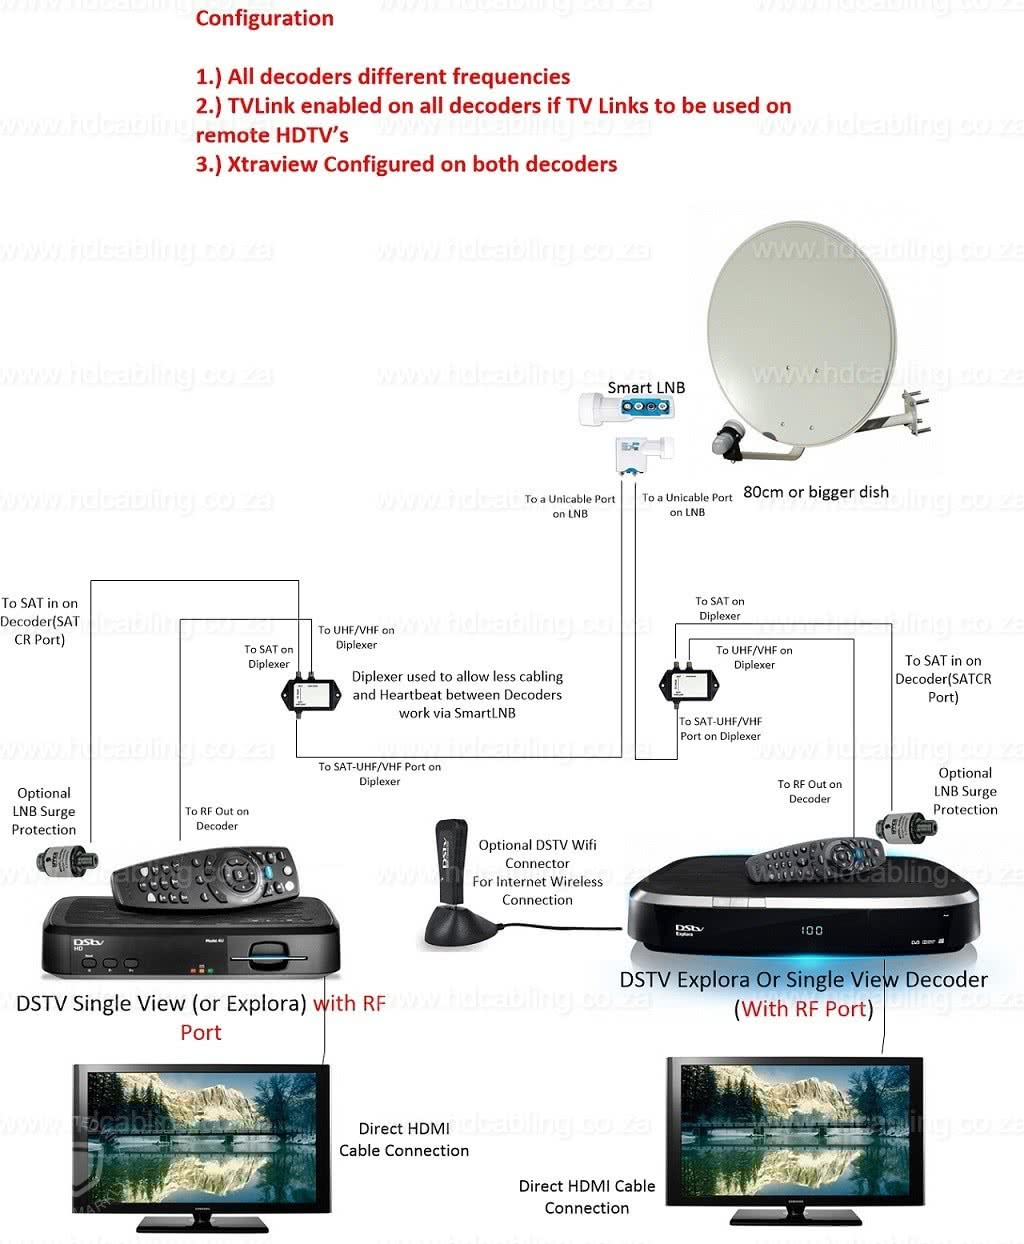 DSTV XtraView Installation & Frequencies (User Bands) for Multichoice Explora/HDPVR and other decoders 3